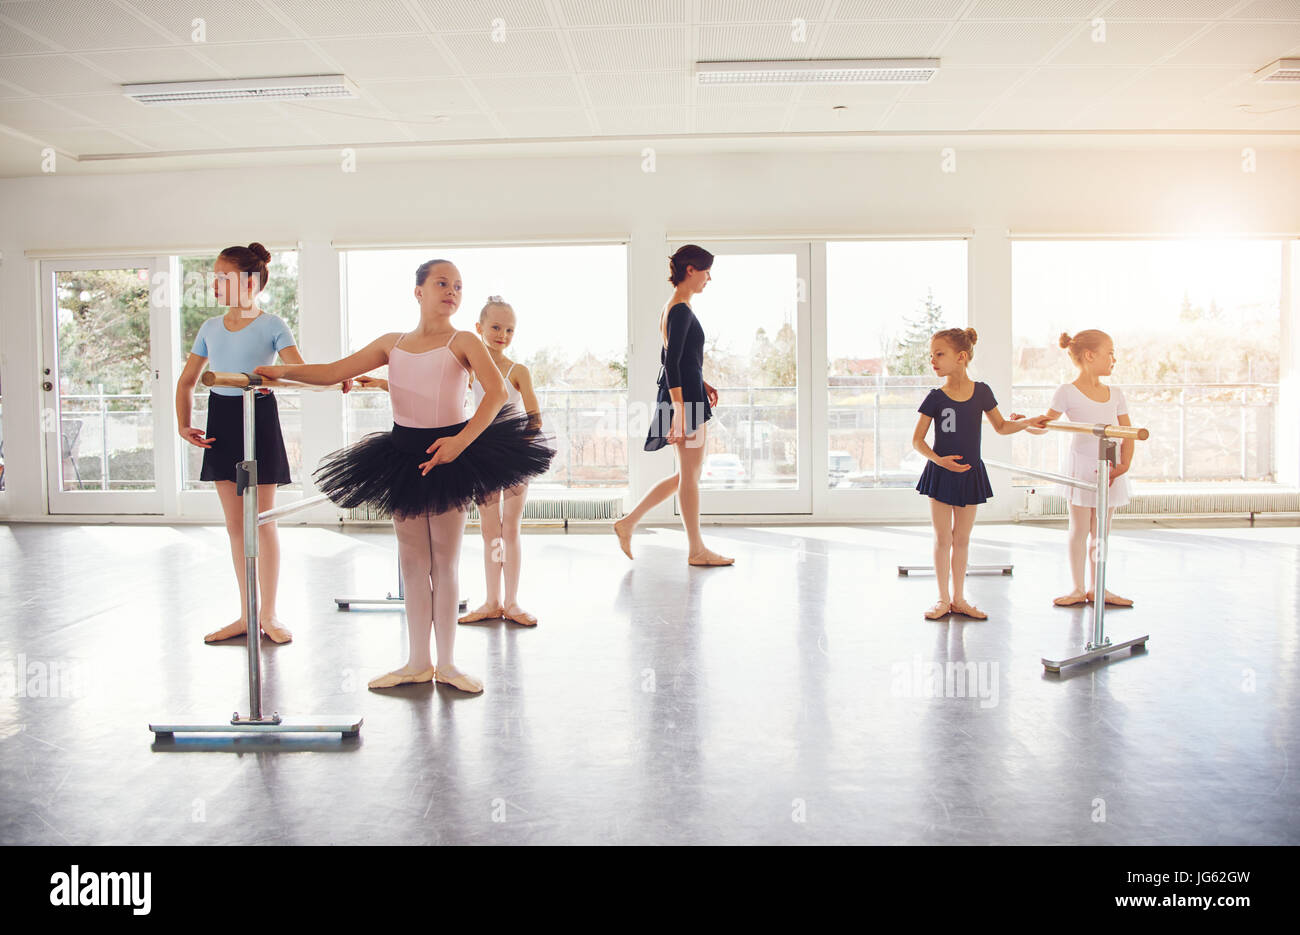 Young girls performing ballet standing and exercising in ballet class. - Stock Image